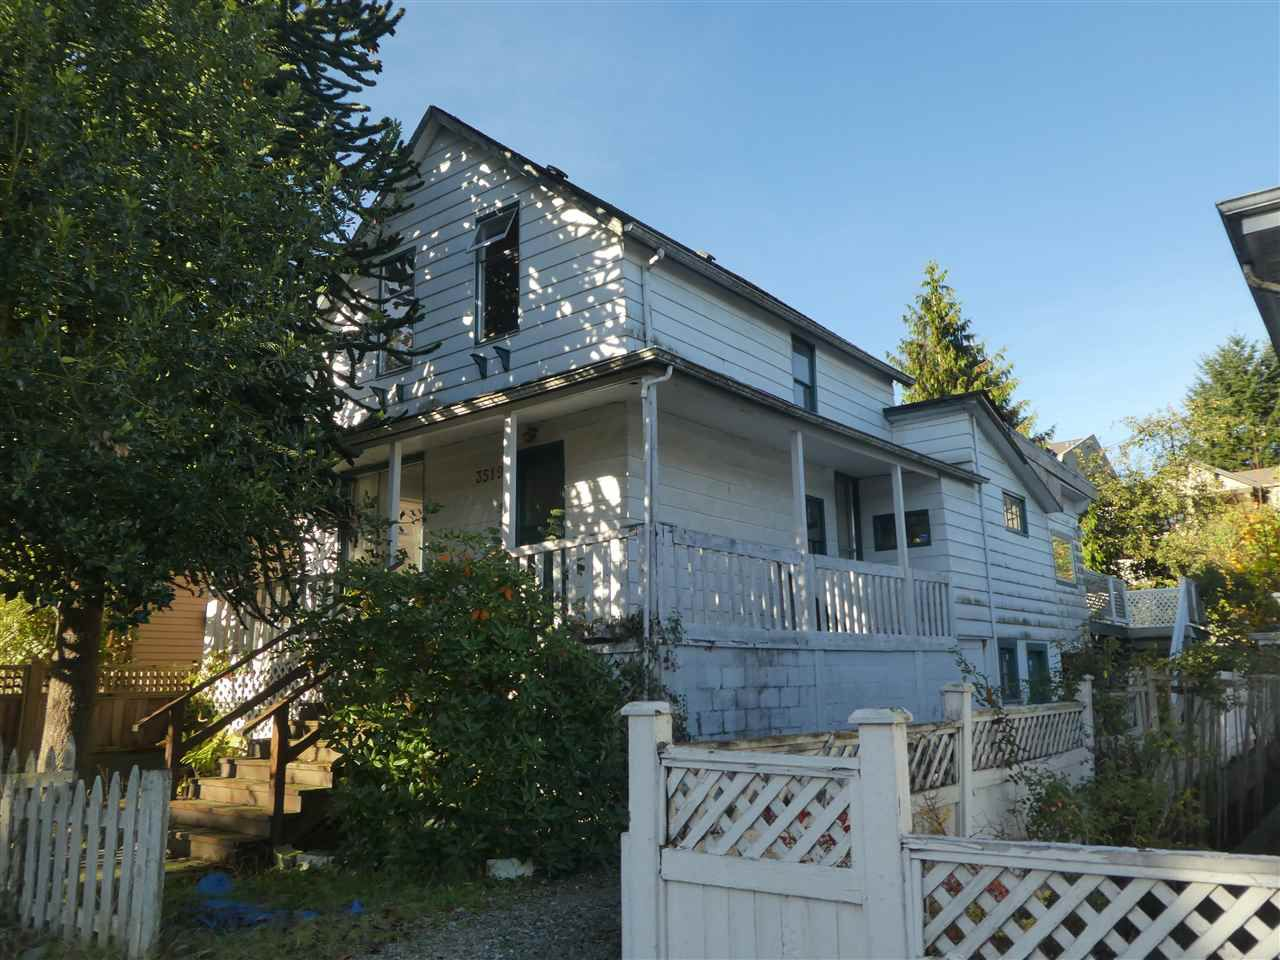 Main Photo: 3519 HULL Street in Vancouver: Grandview VE House for sale (Vancouver East)  : MLS®# R2217453